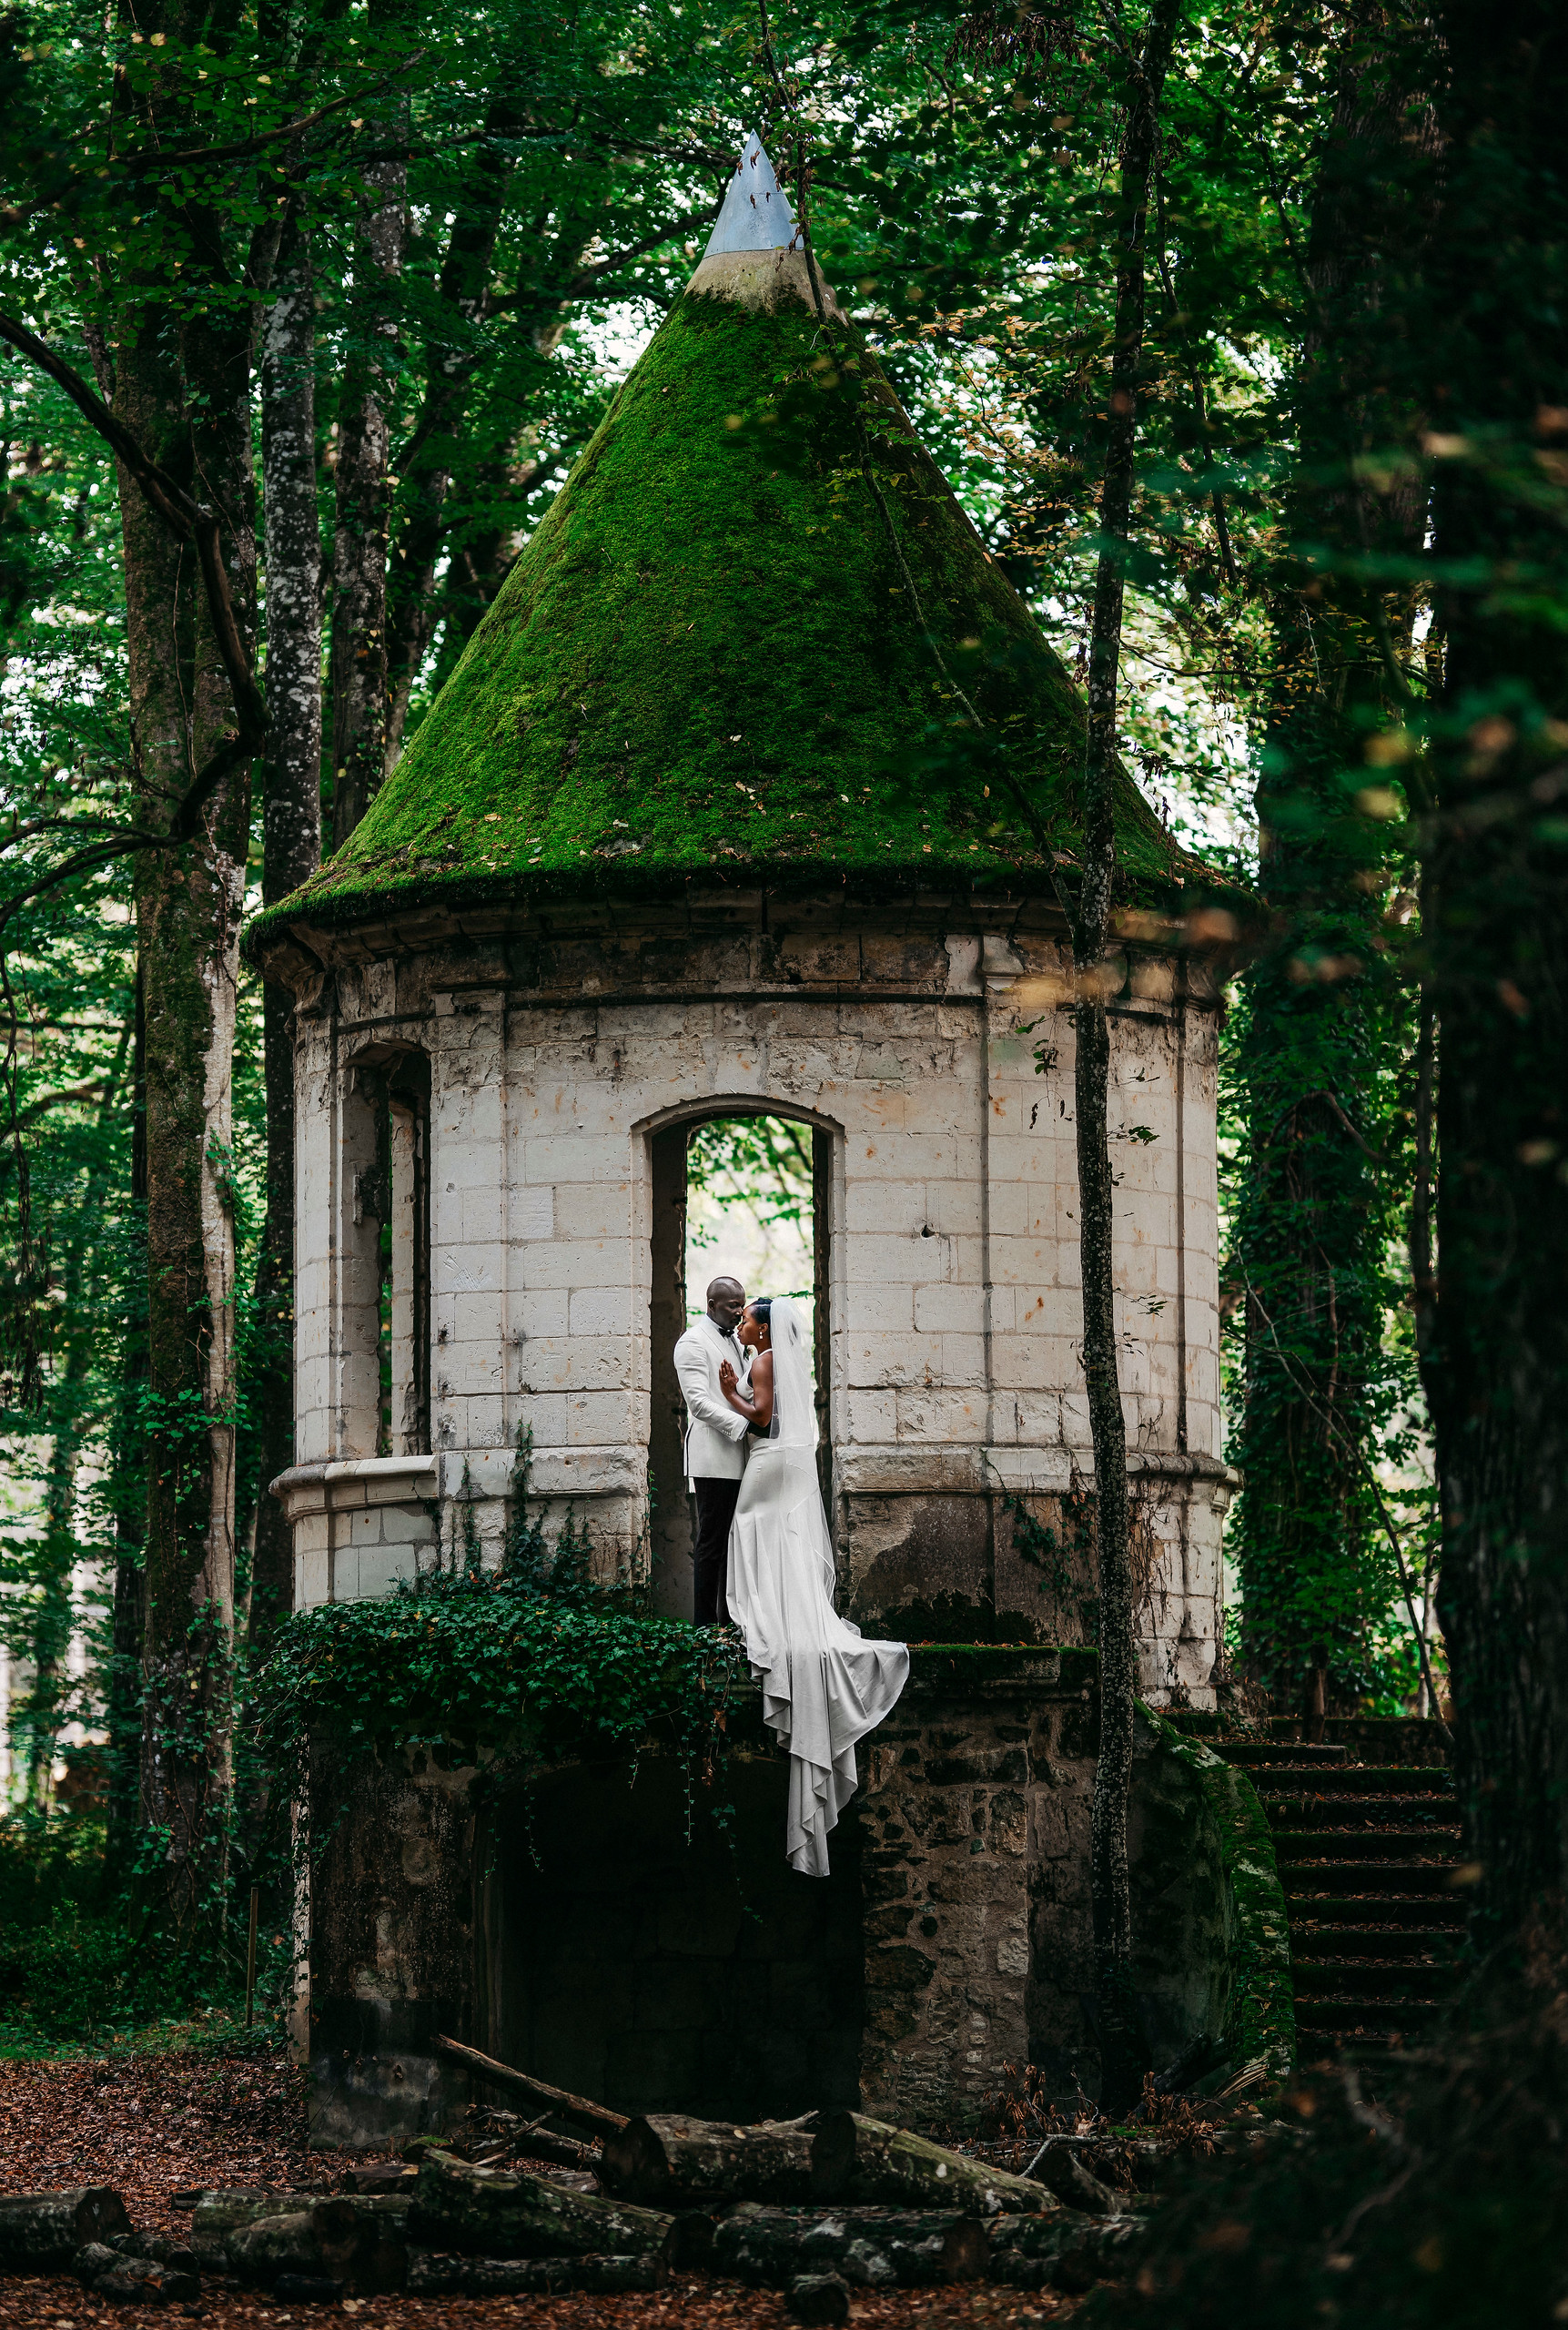 Bride and groom standing in the archway of a historic tower